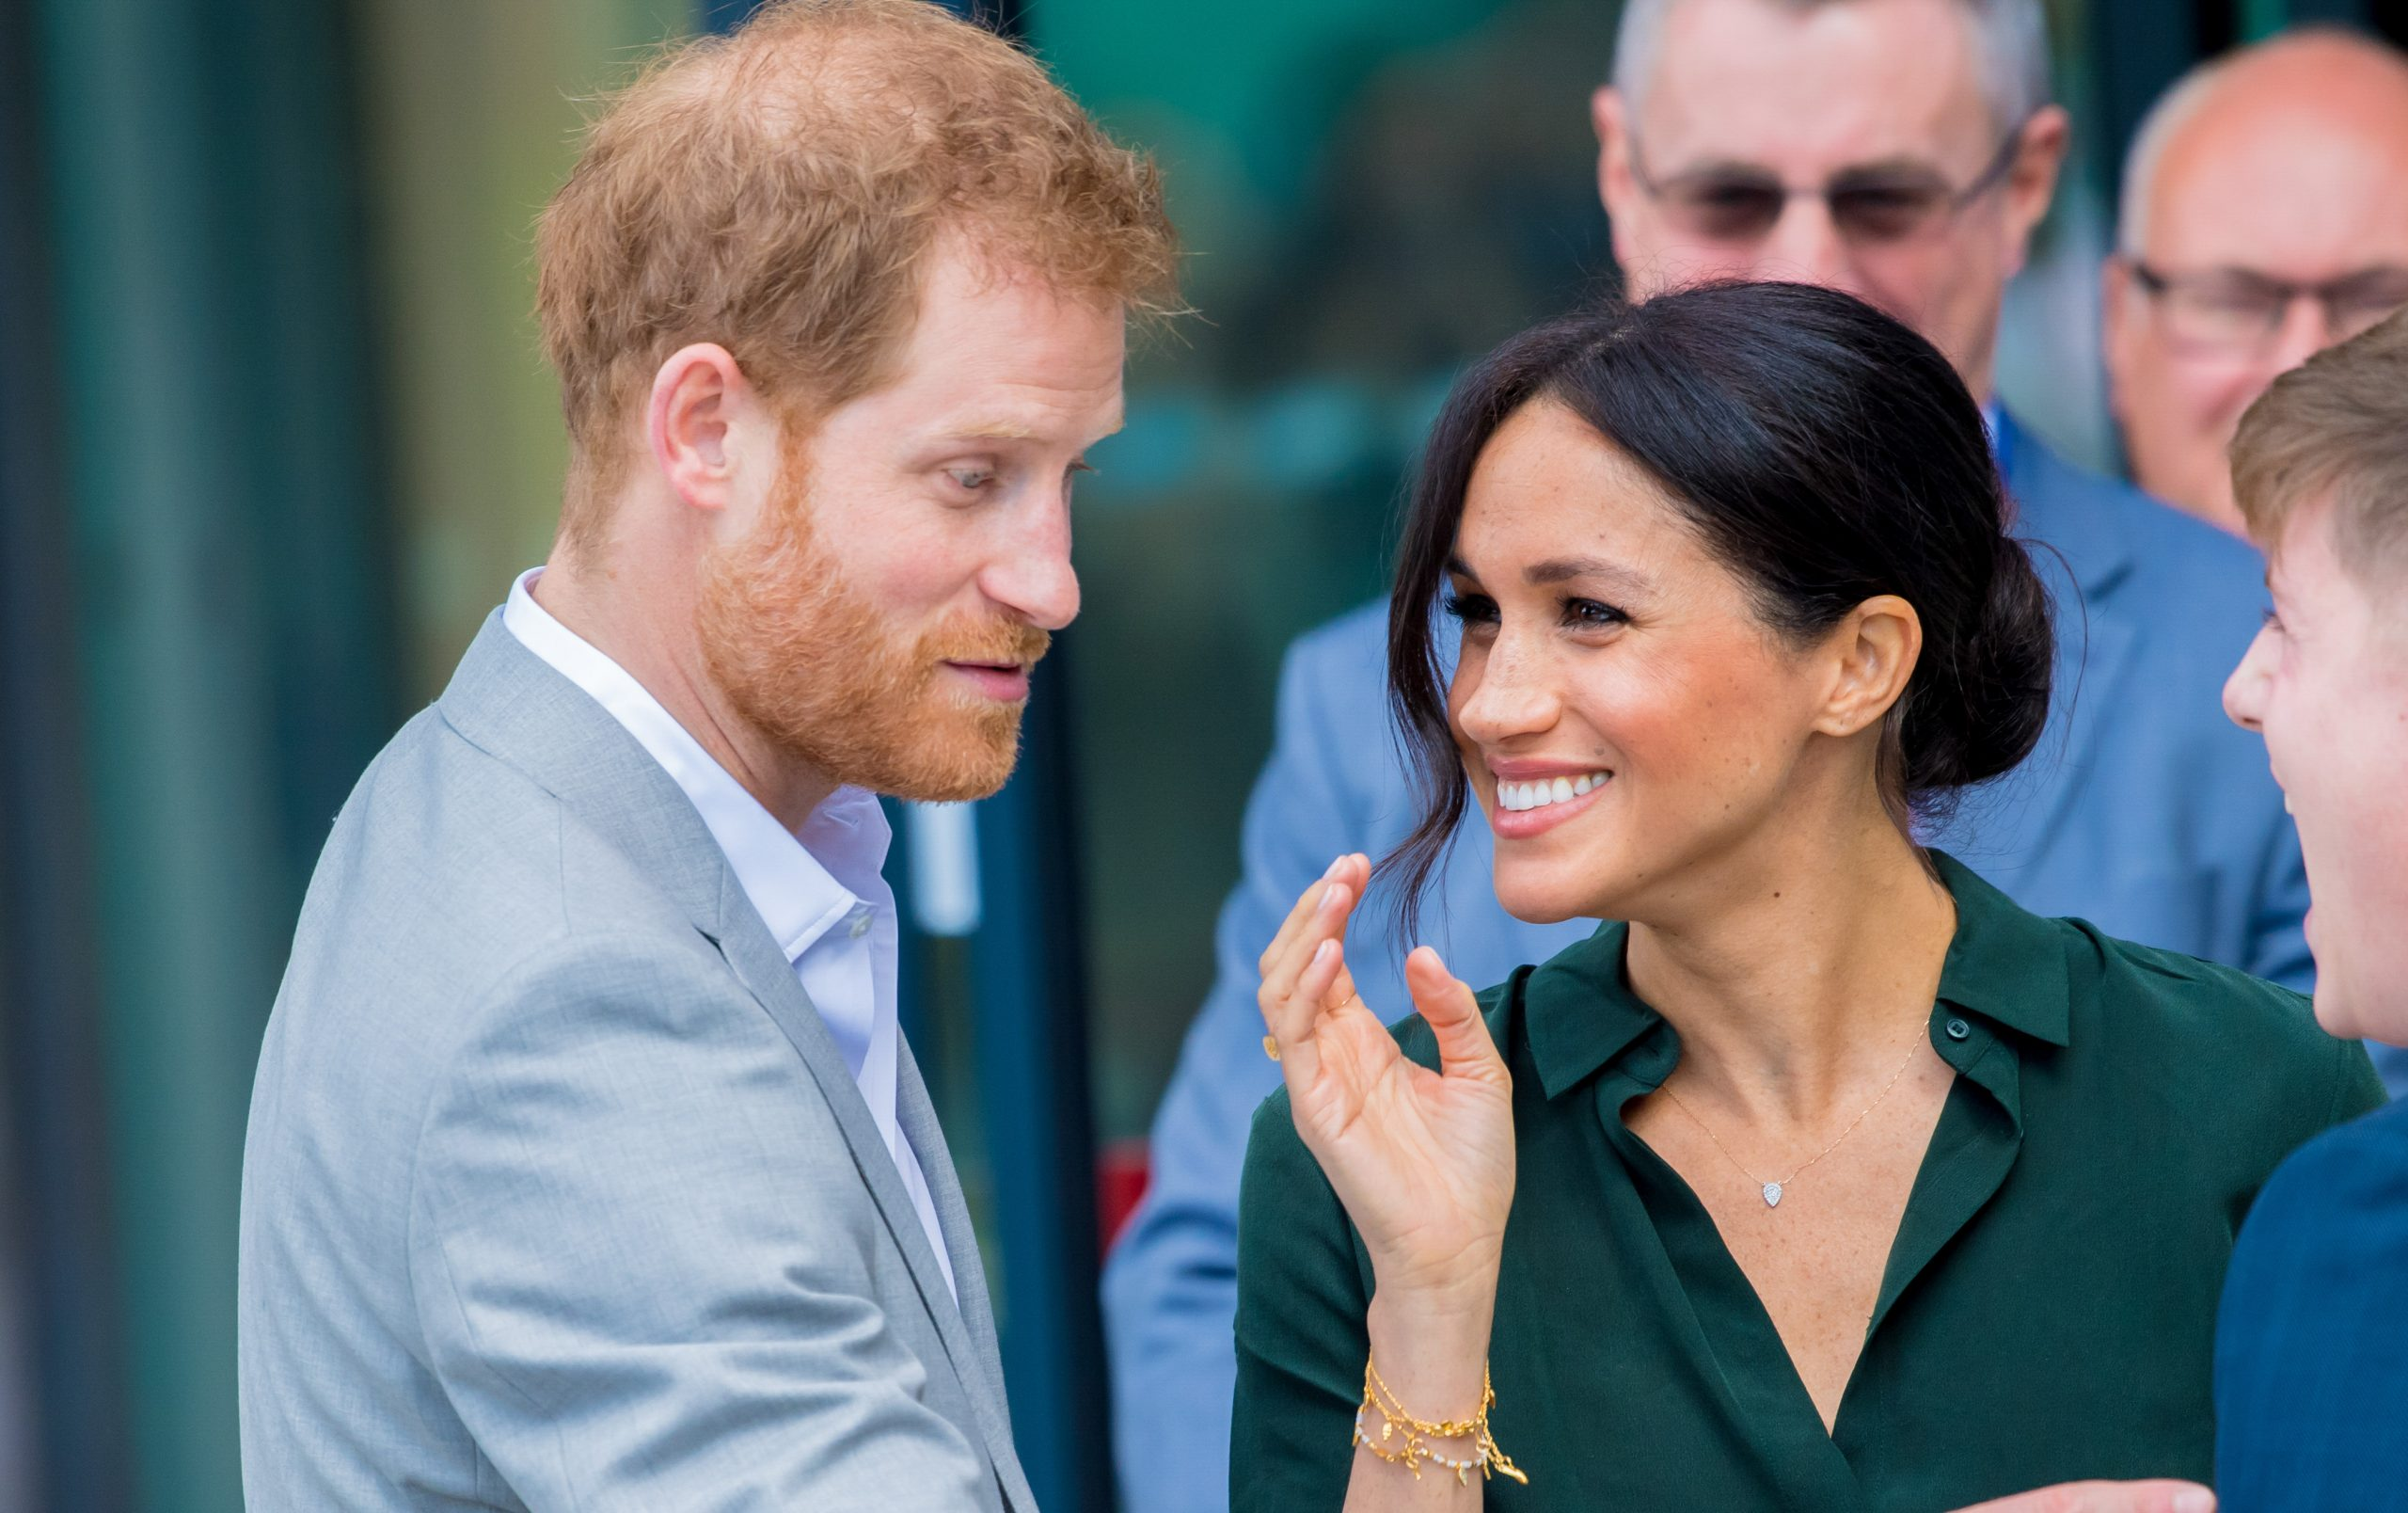 Prince Harry 'in million-pound talks' with US bank as he and Meghan are set to cash in on corporate deals